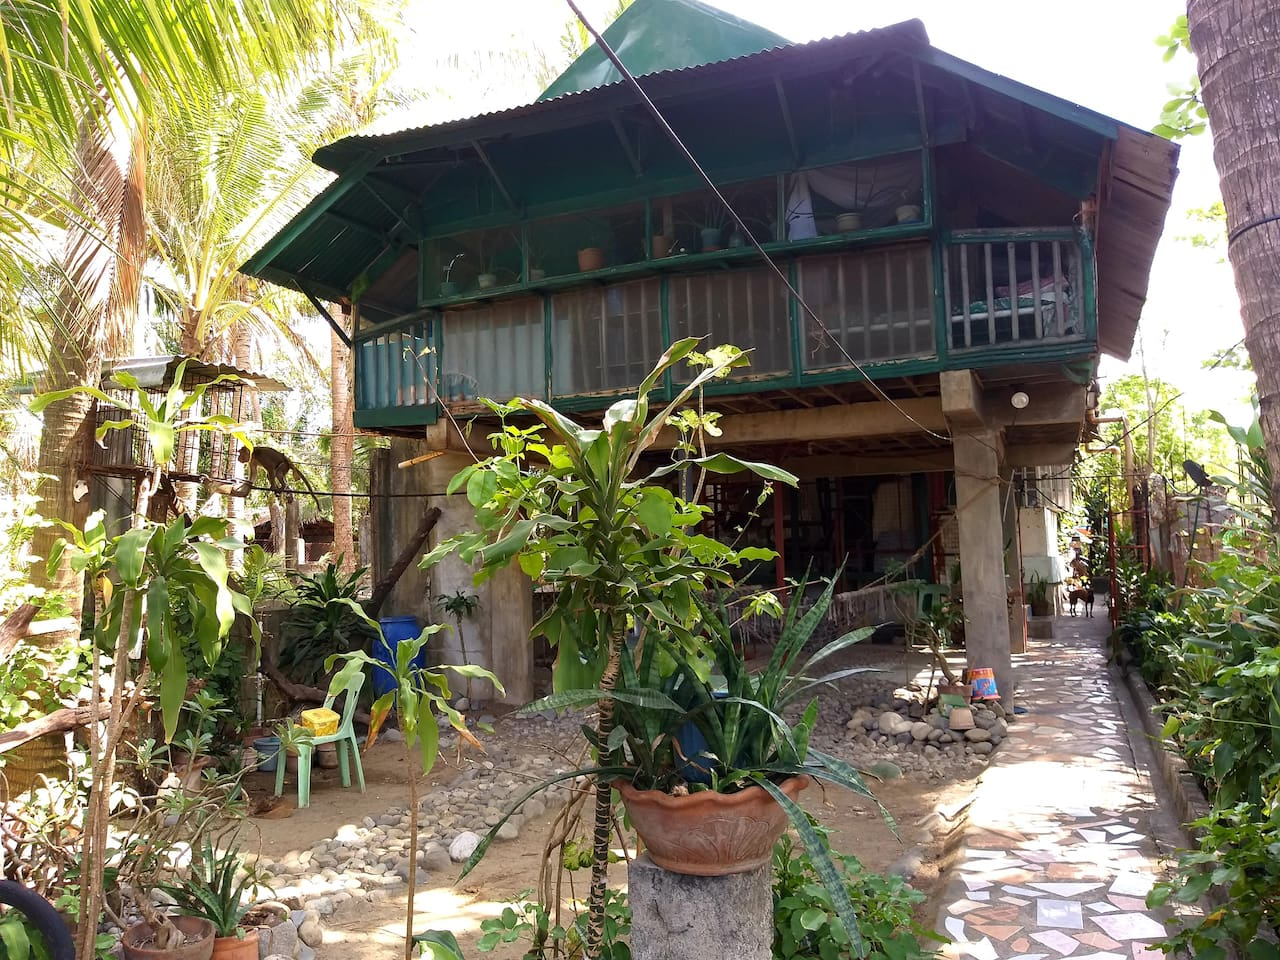 Soulful Bliss Beach Home is a one-room house that consist the beds, sala, kitchen, comfort room and shower room.  If you come here, leave the comforts of your home and try to embrace life simplicity and experience different adventure.